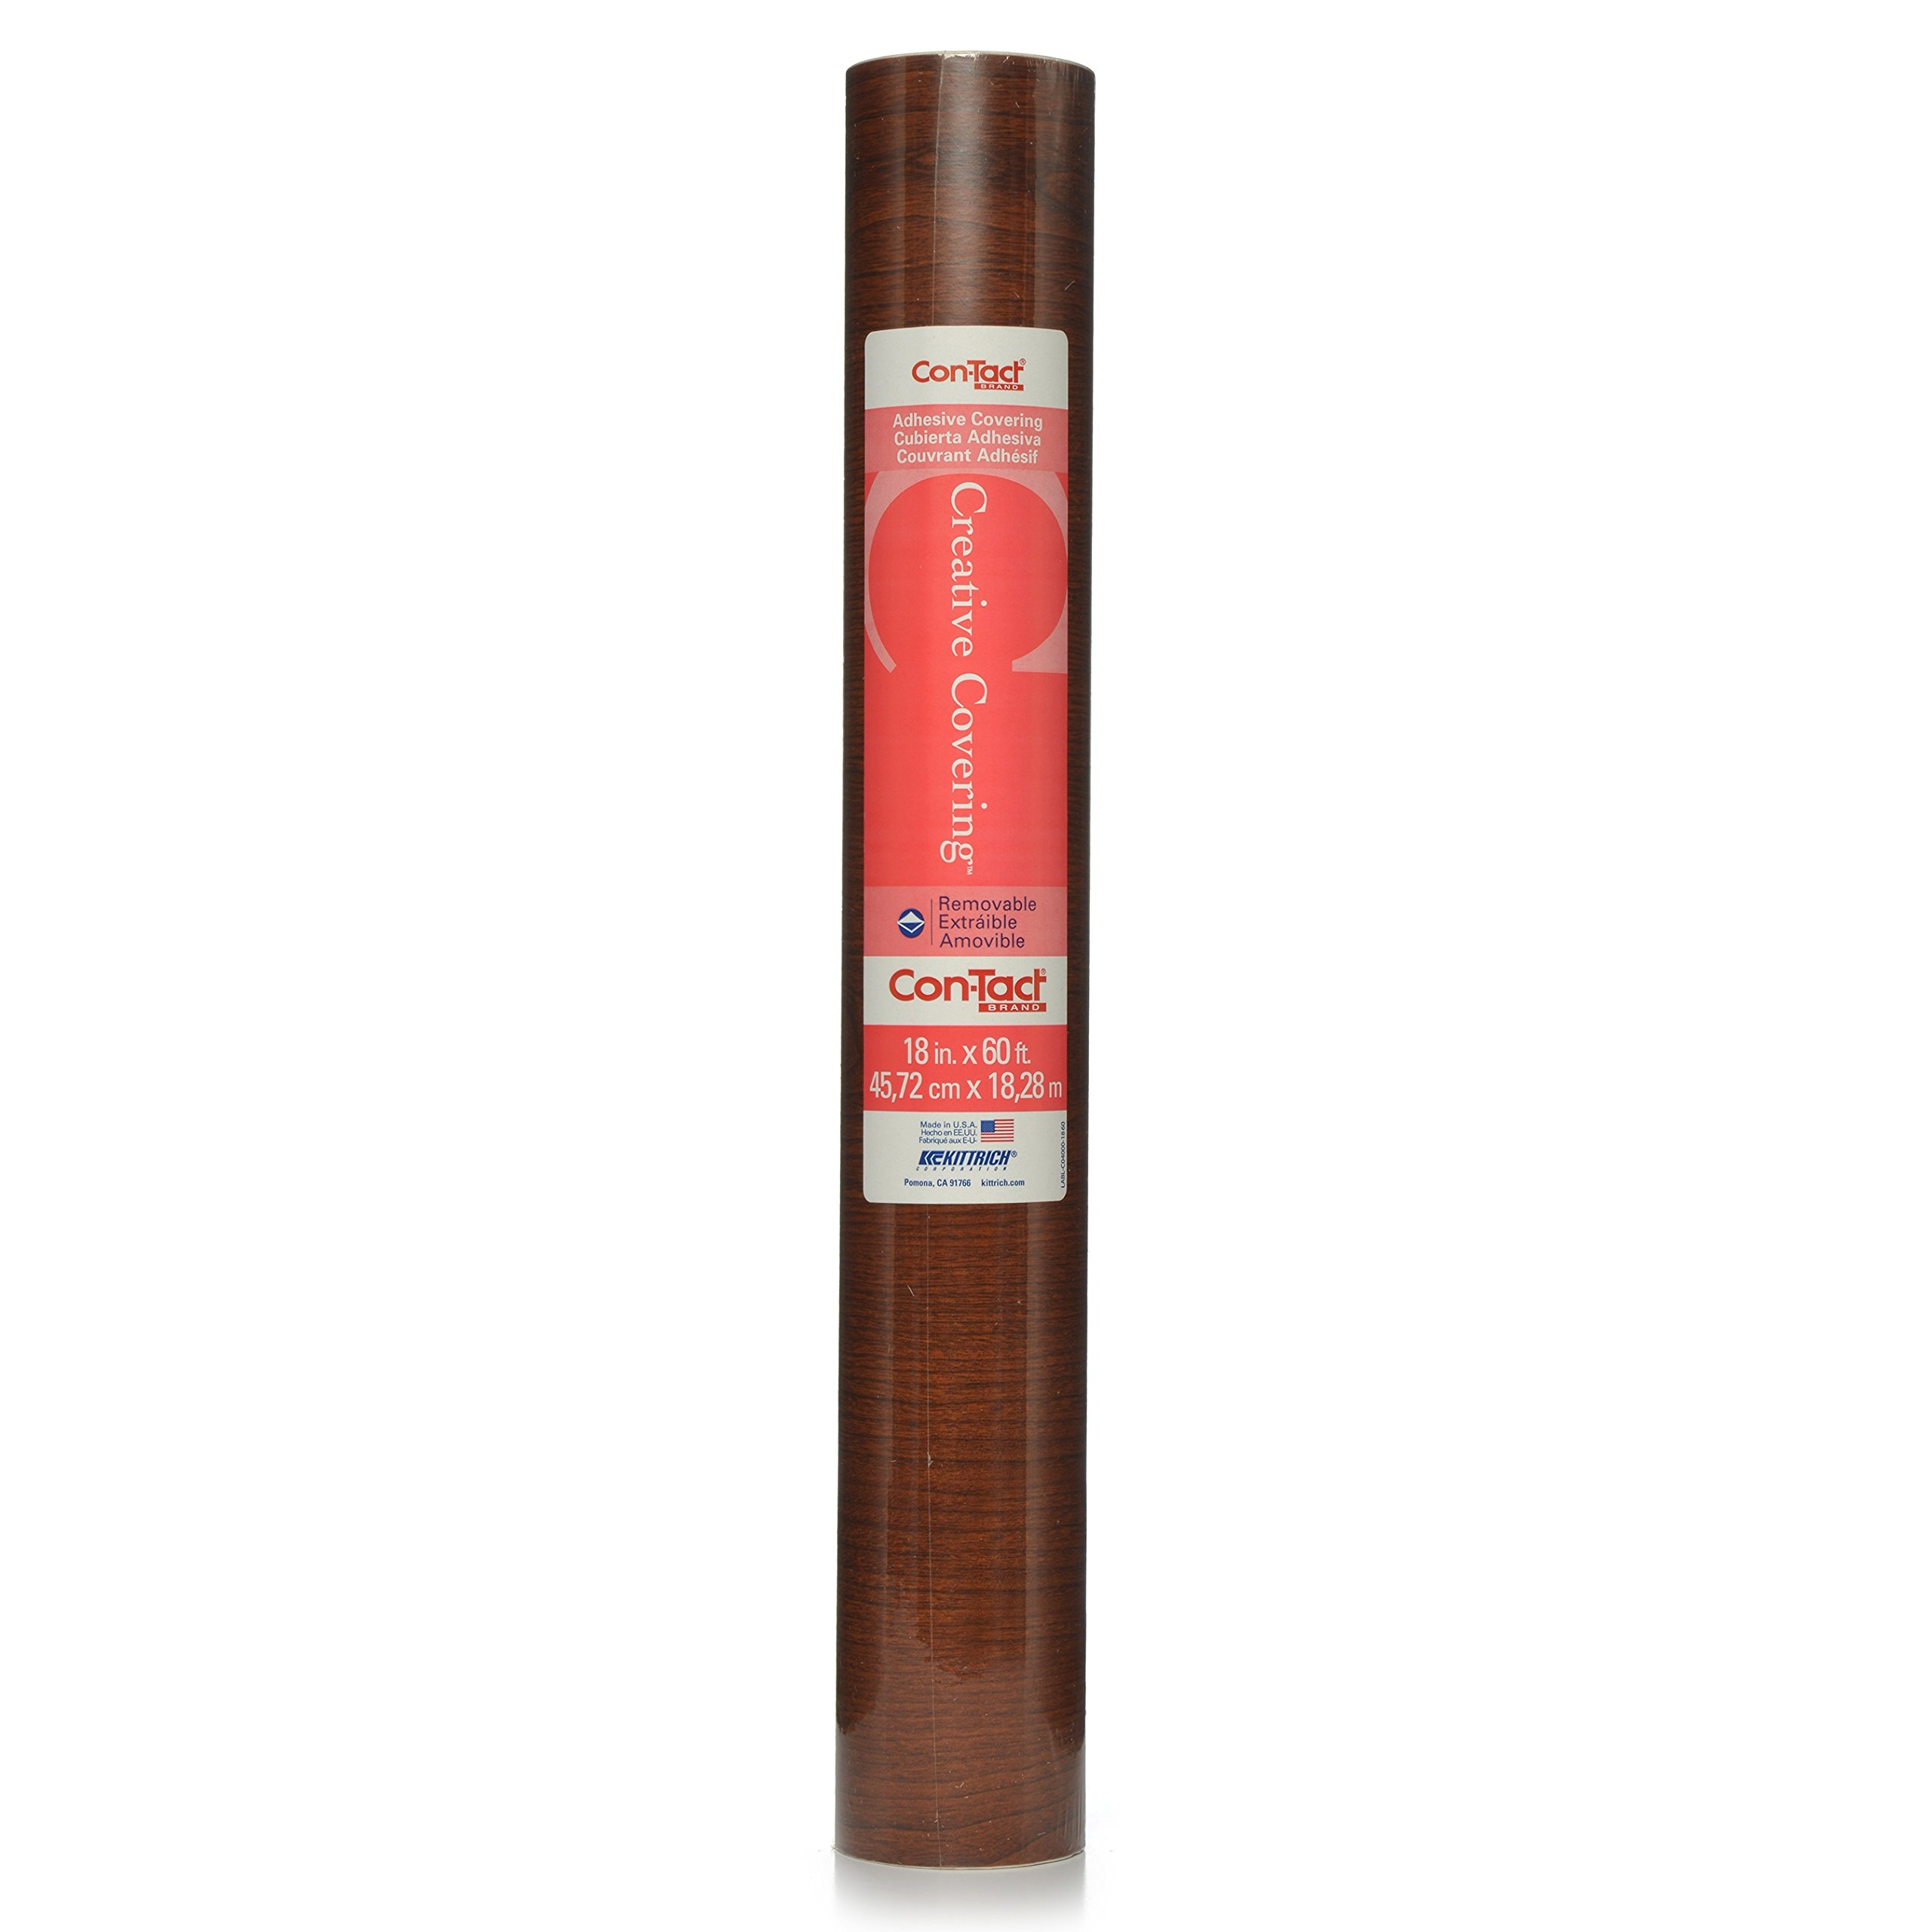 Con-Tact Brand Creative Covering, 60F-C9A4M6-01, Adhesive Vinyl Shelf Liner and DrawerLiner, Cherry Woodgrain, 18'' x 60'